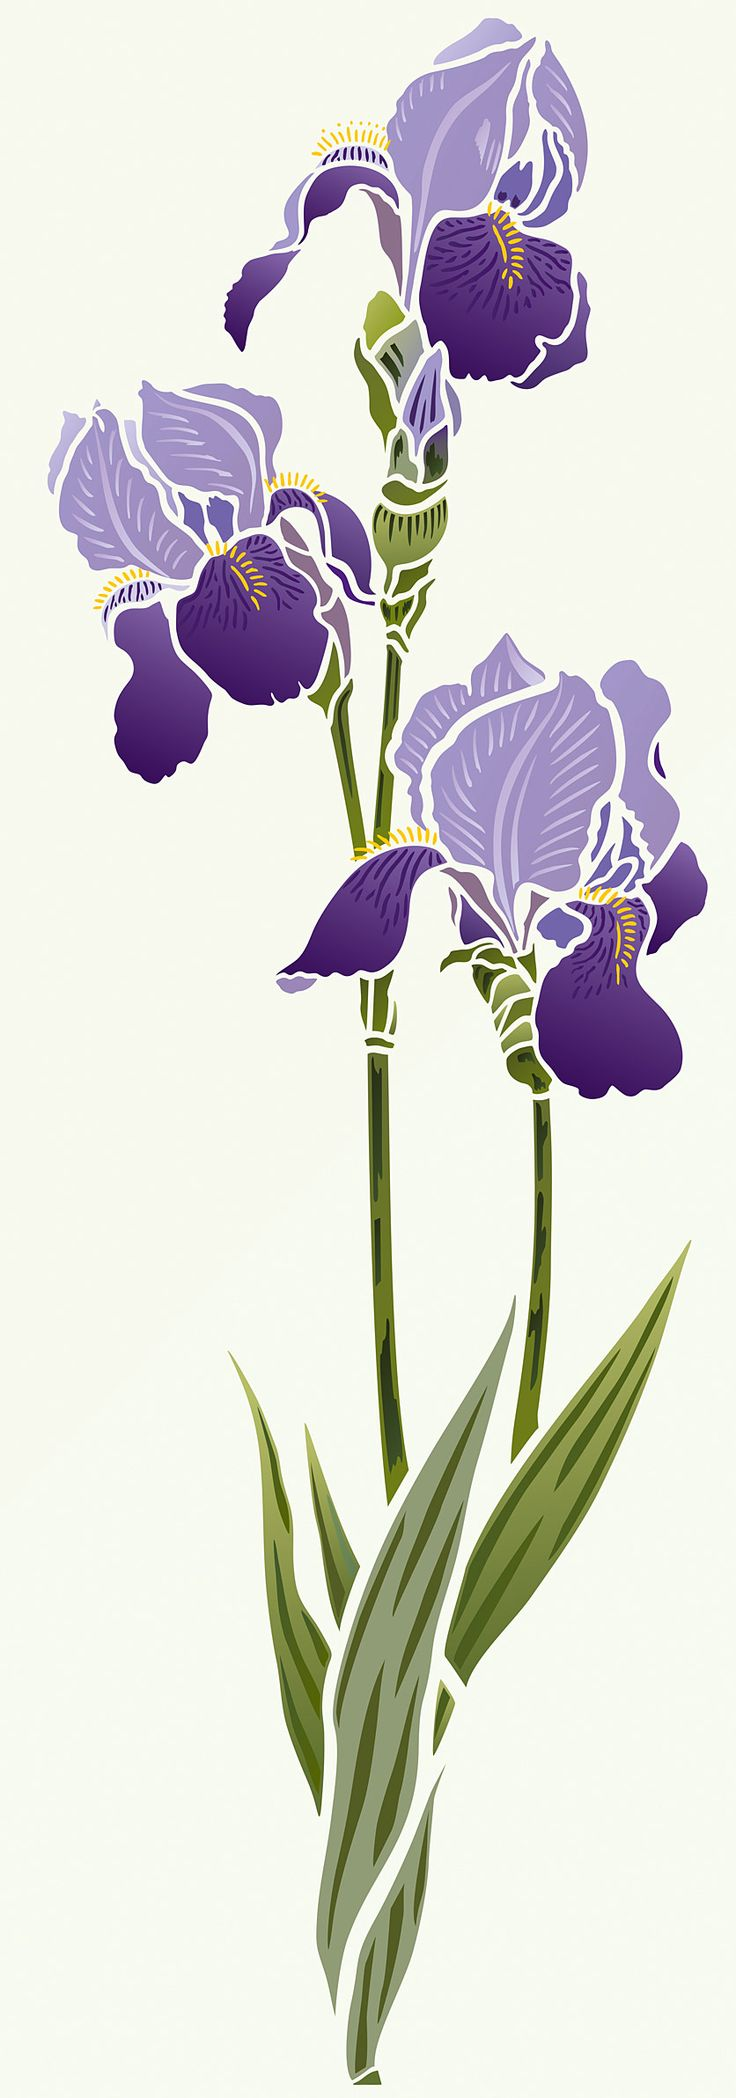 BeautifulIris flower stencil. 2 sheet designer stencil Iris Stencil 1 is a beautiful and elegant Iris Stencil based on Henny's detailed Bearded Iris drawings. This beautiful flower stencil is ideal for modern floral and botanical home decorating. Great for panels, furniture, soft furnishings and